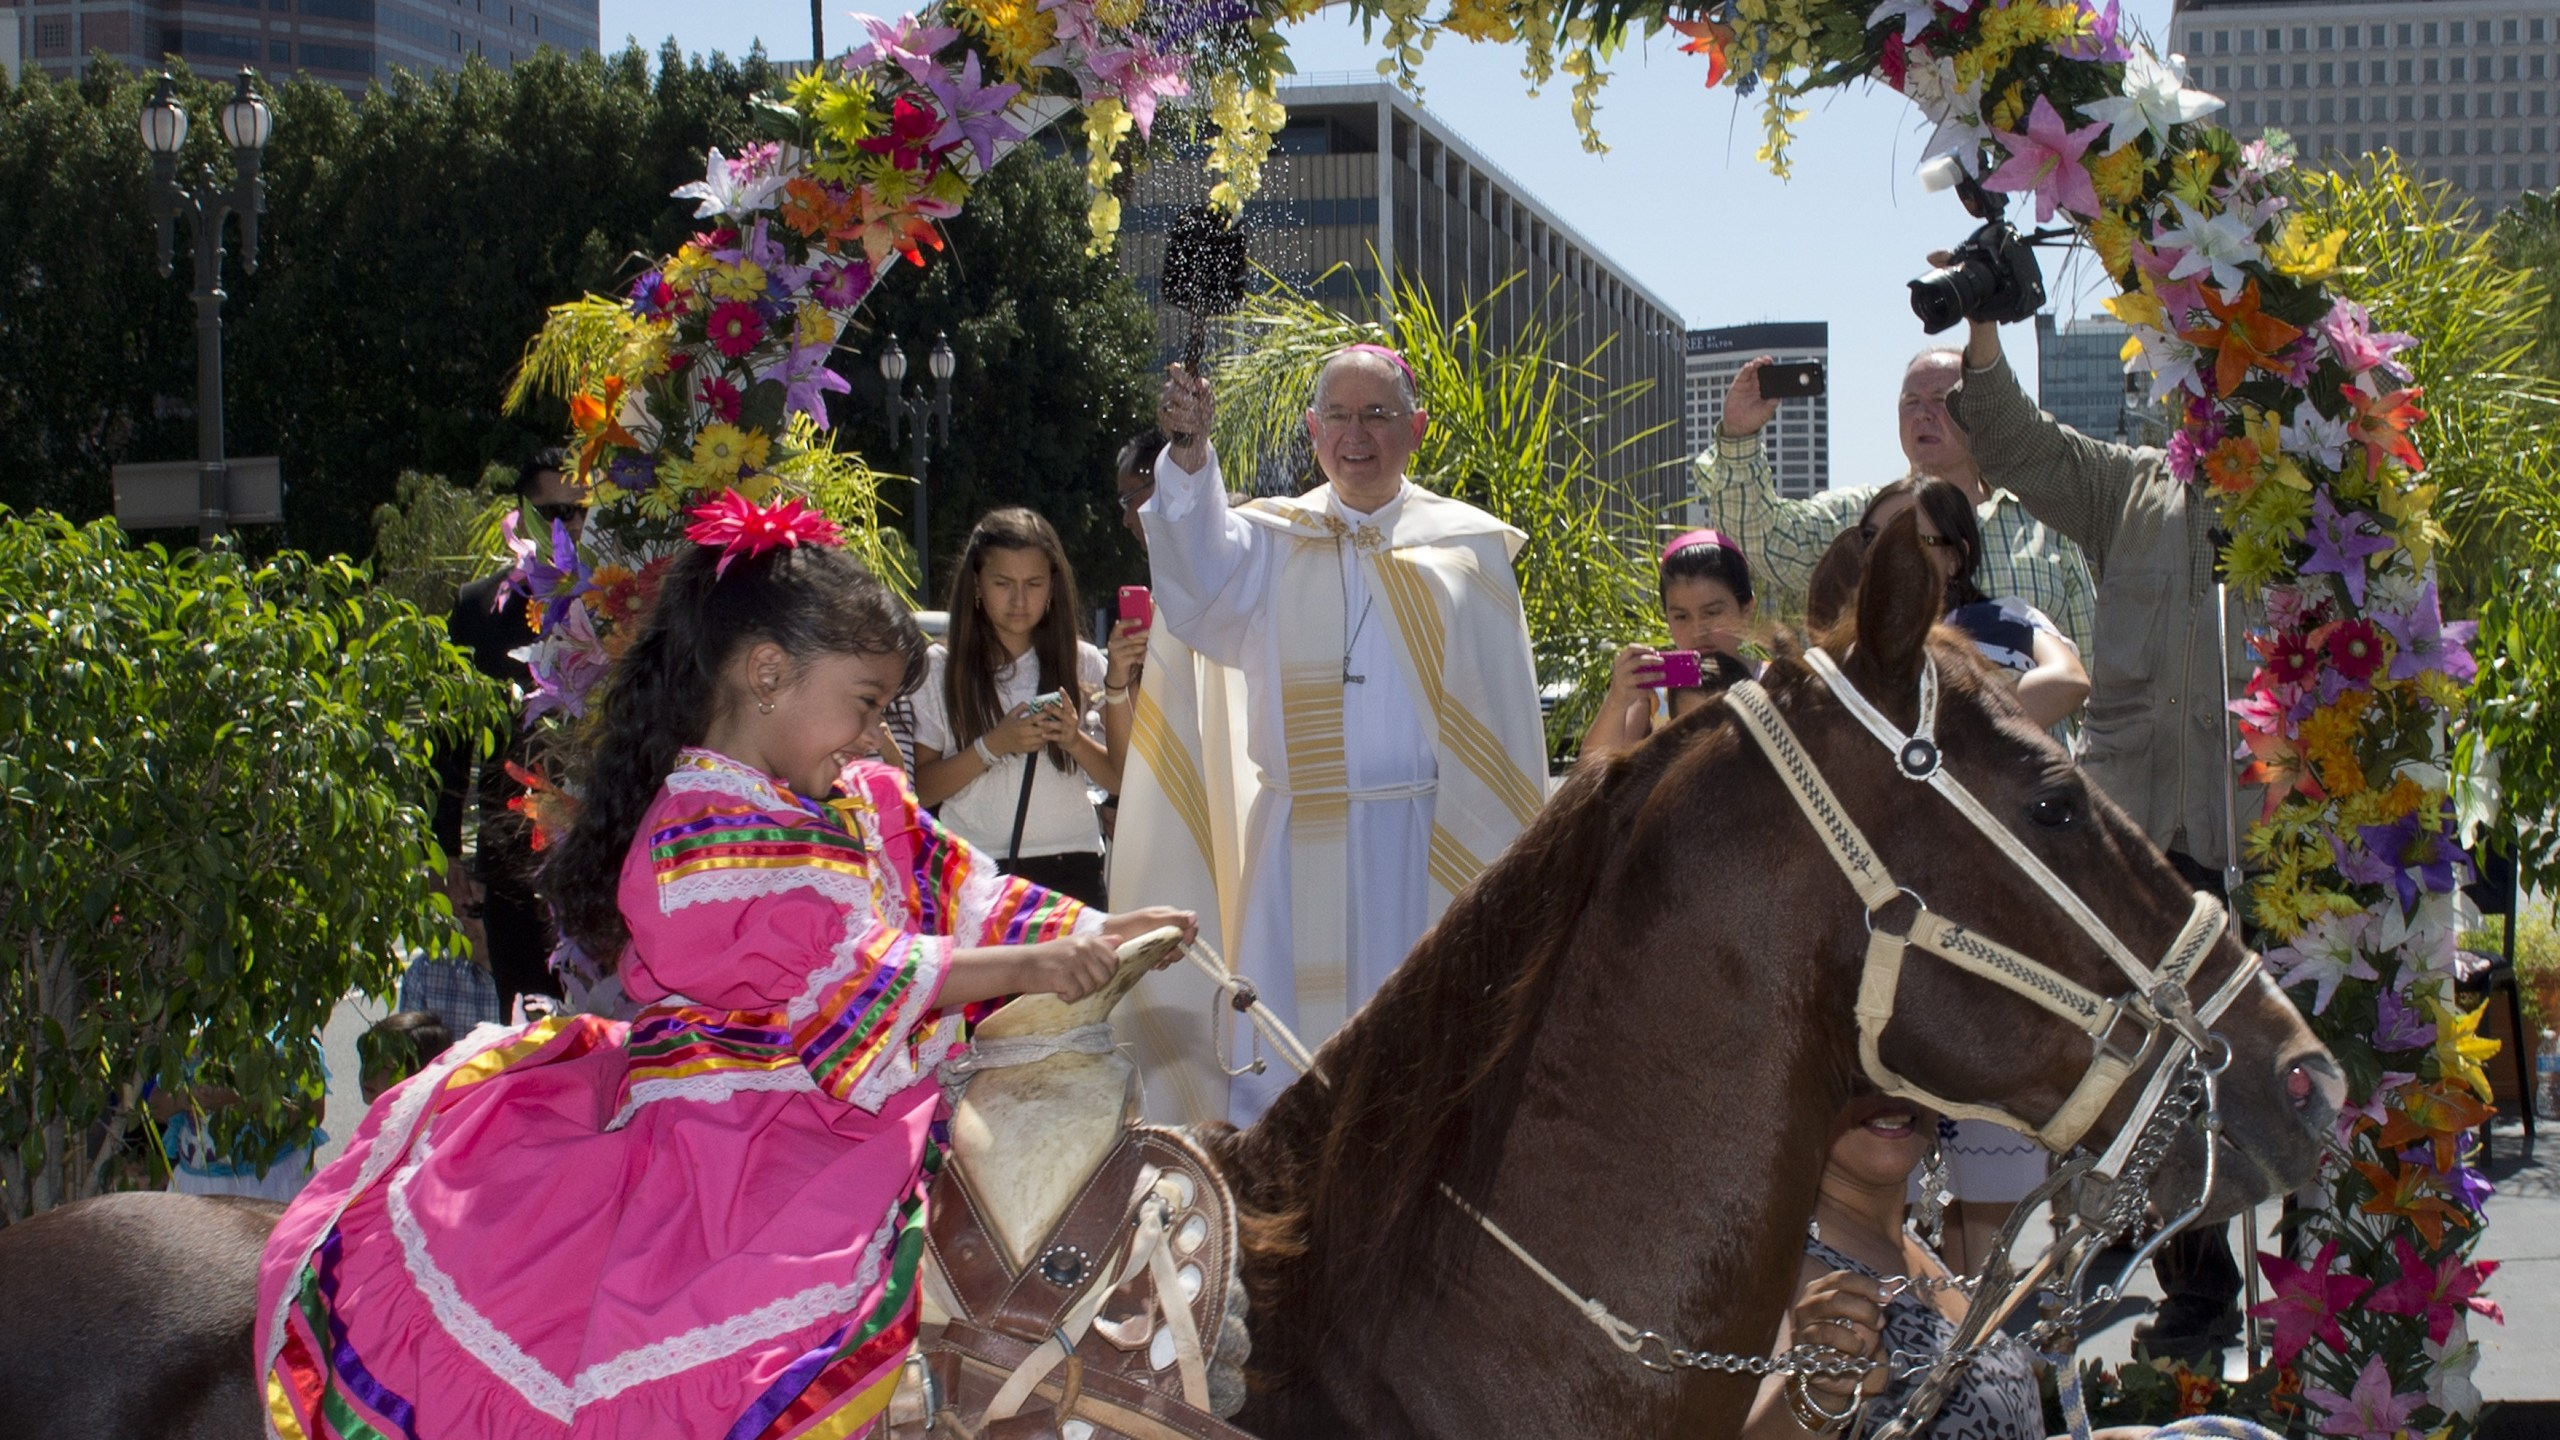 Anaii Gutierrez,4, and her horse Cara de Chango receive a holy water blessing from Catholic Archbishop Jose H. Gomez during a Blessing of Animals Easter event in Los Angeles on April 4, 2015. (Credit: MARK RALSTON/AFP/Getty Images)